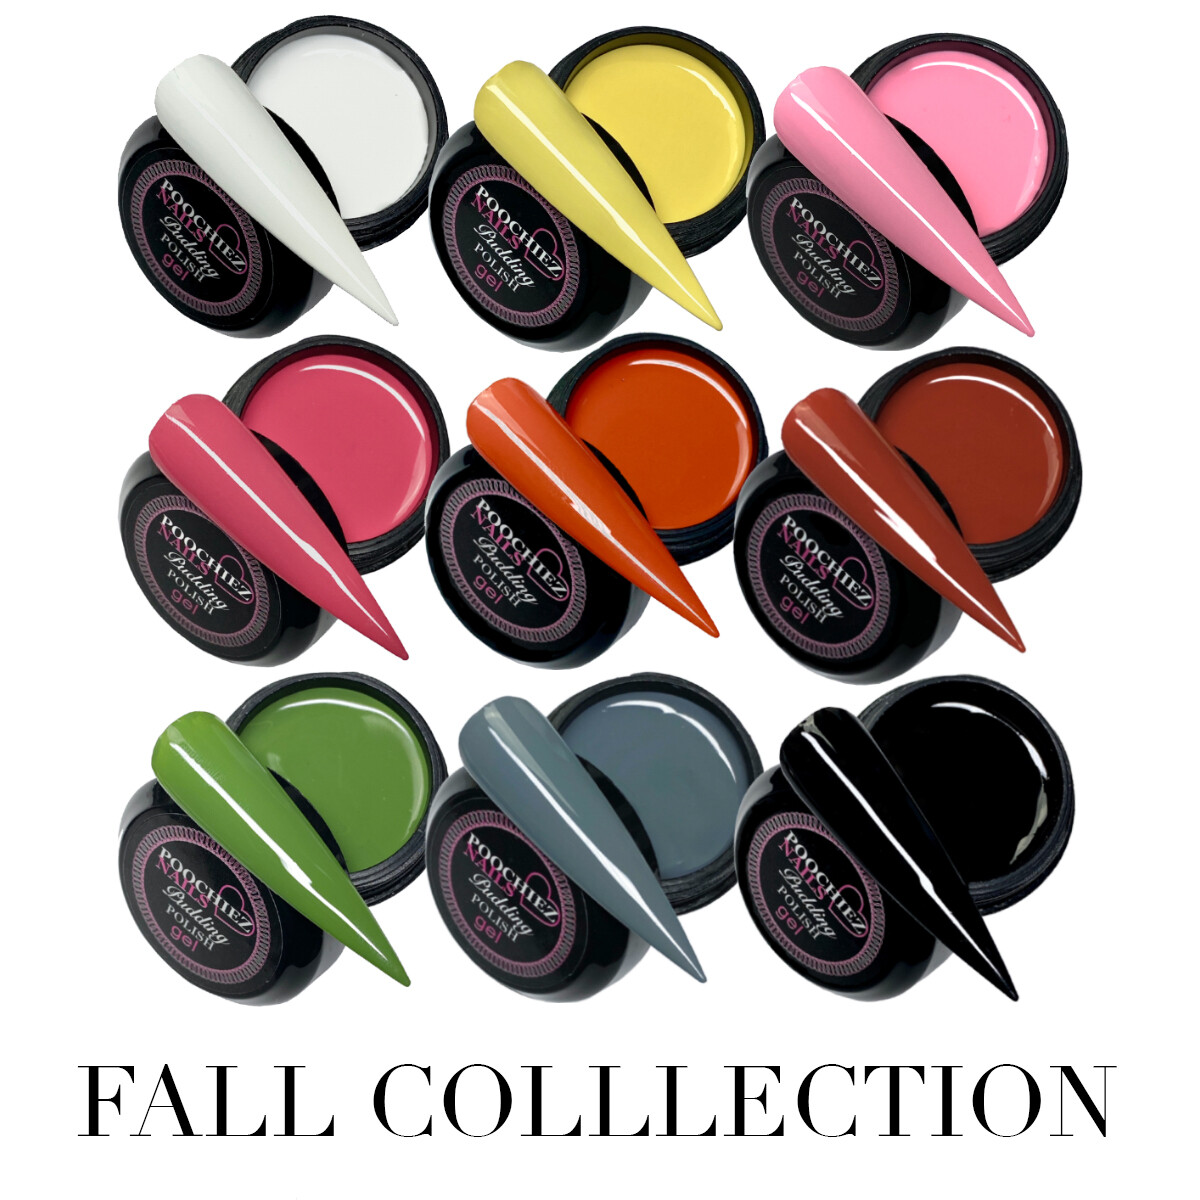 FALL COLLECTION -( #106 - #139 - #157 - #220 - #244 - #249 - #267 - #316 - #317 )